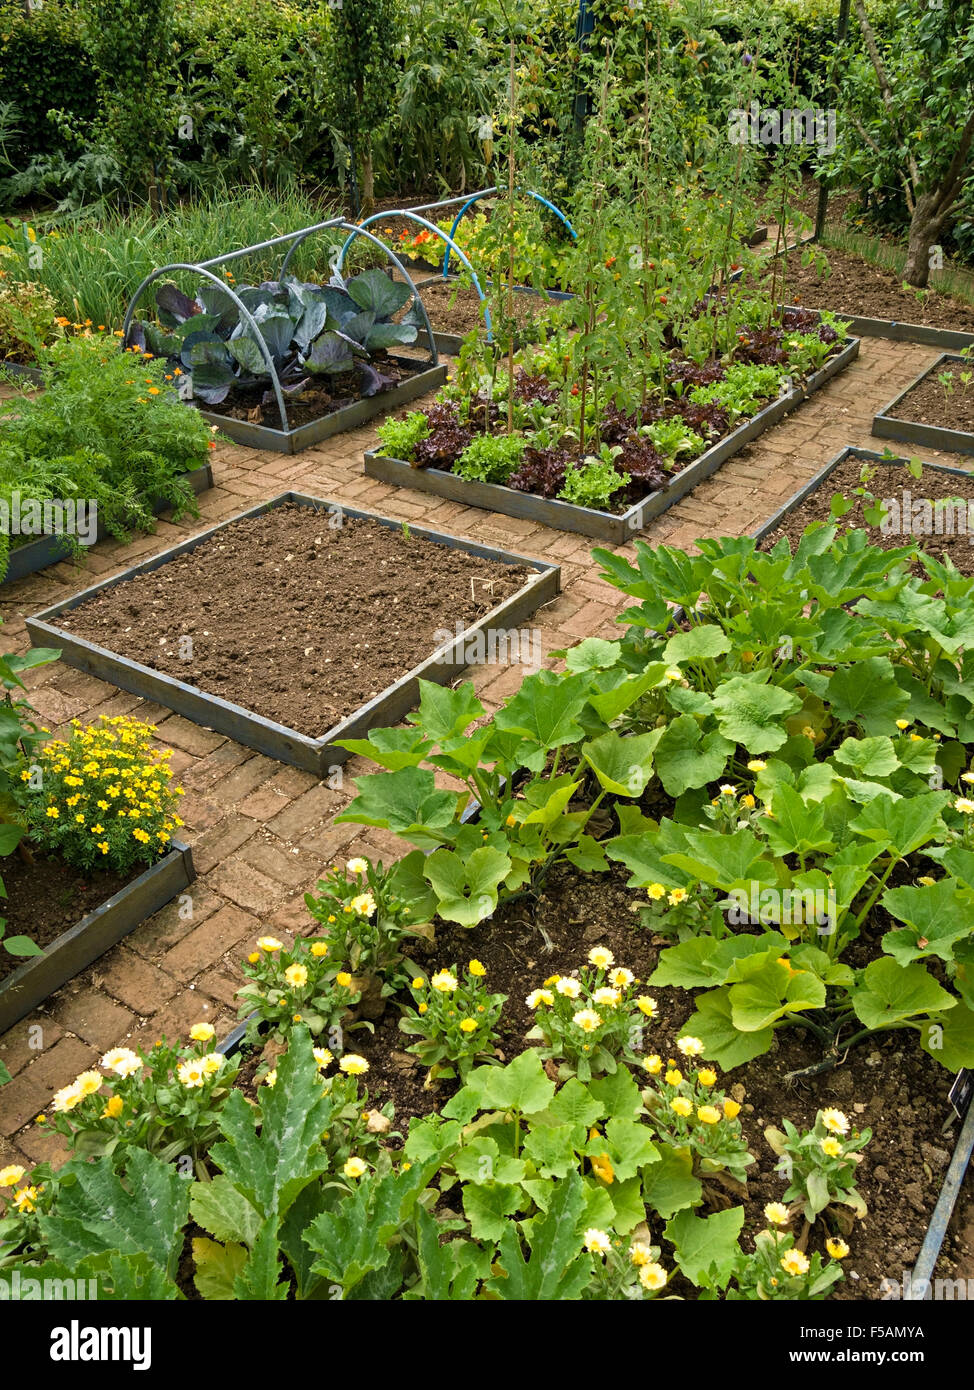 Cottage Vegetable Garden With Small Raised Beds And Brick Paved Paths,  Barnsdale Gardens, Rutland, England, UK.